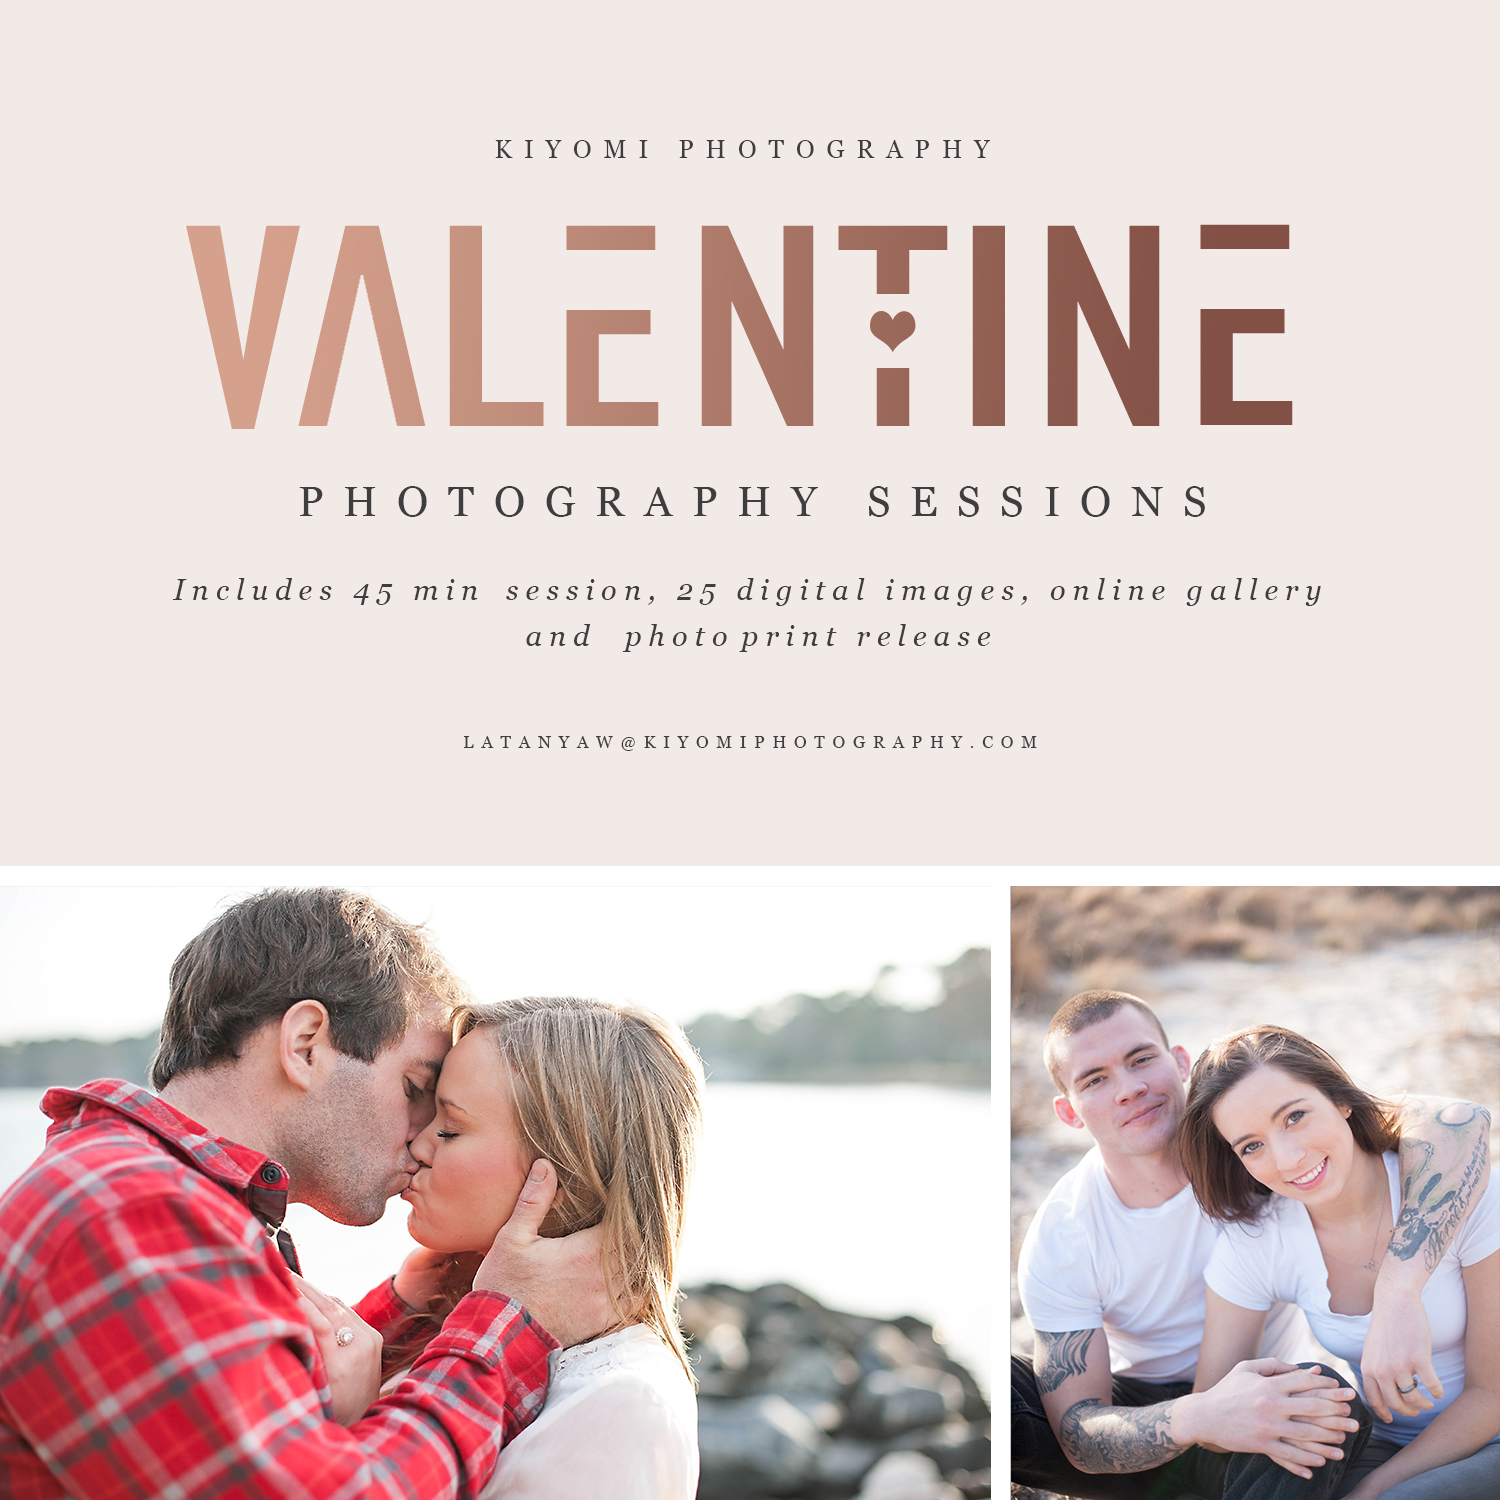 Valentines Day sessions